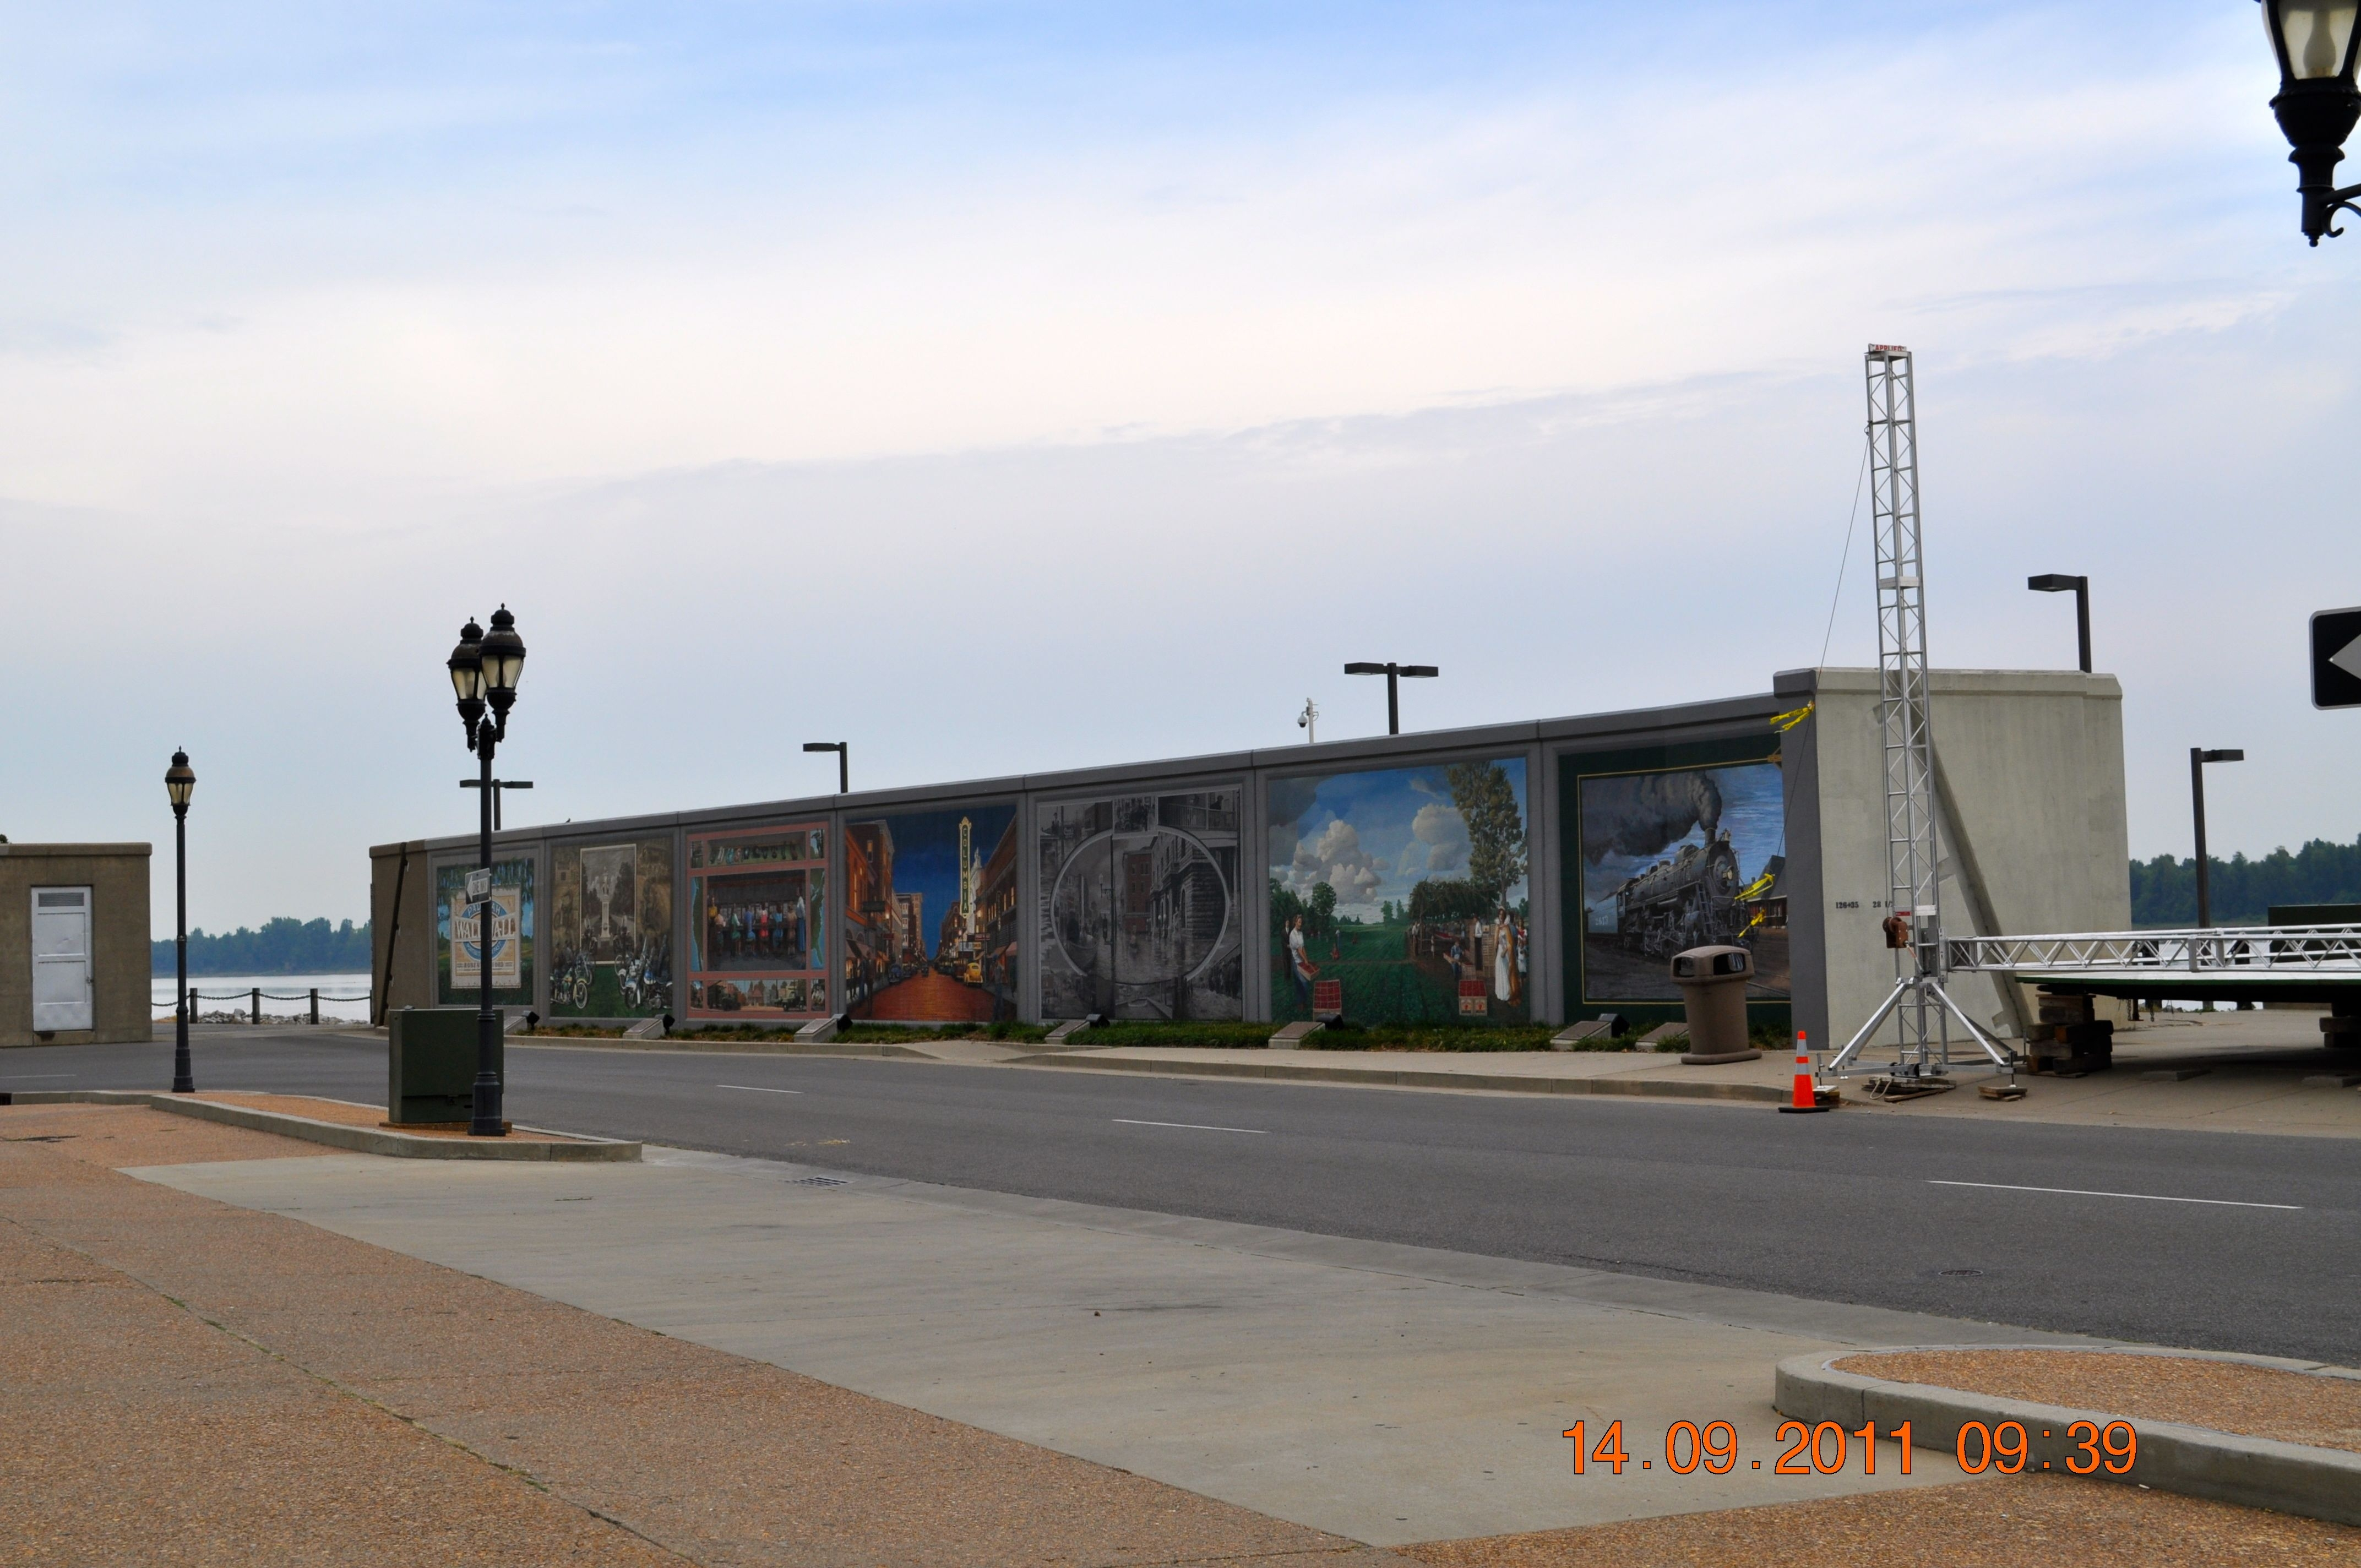 The Paducah Wall to Wall Floodwall Mural Project